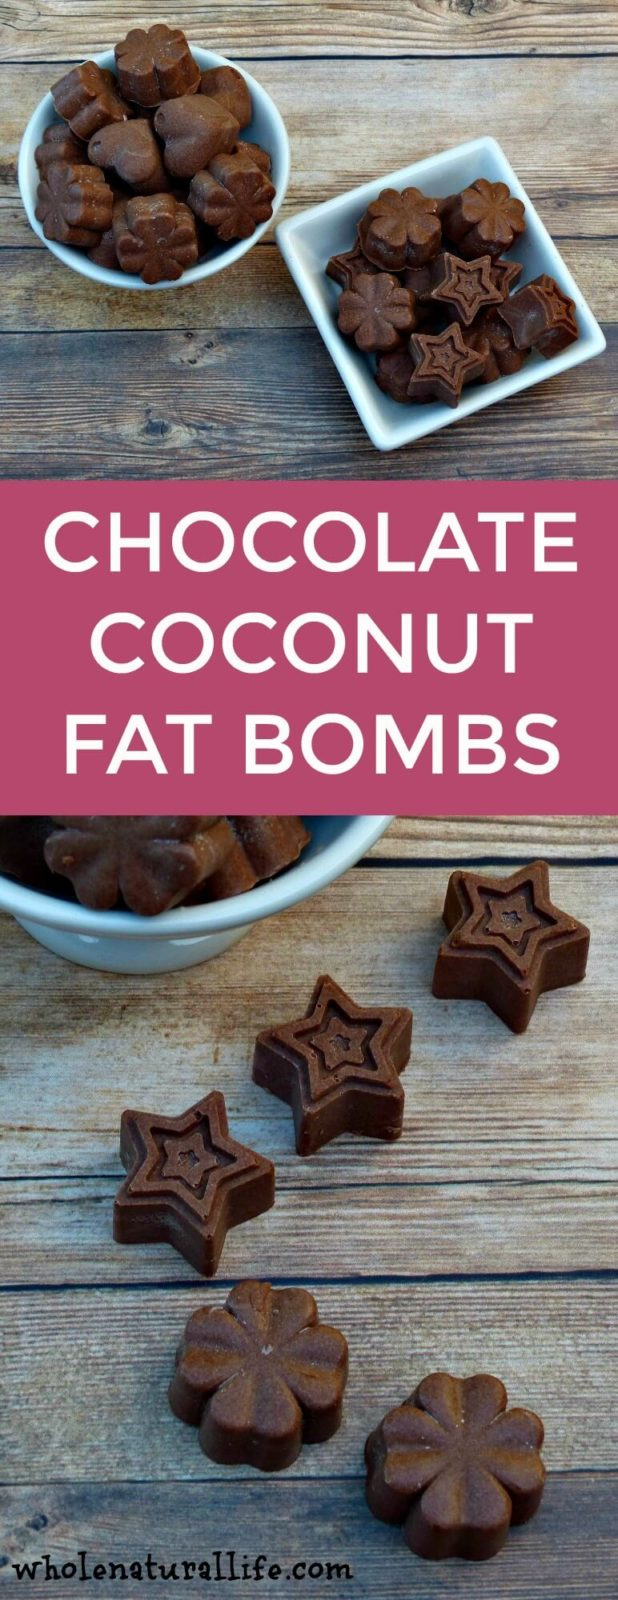 Chocolate coconut fat bombs | Chocolate fat bombs | Coconut oil fat bombs | Easy fat bombs